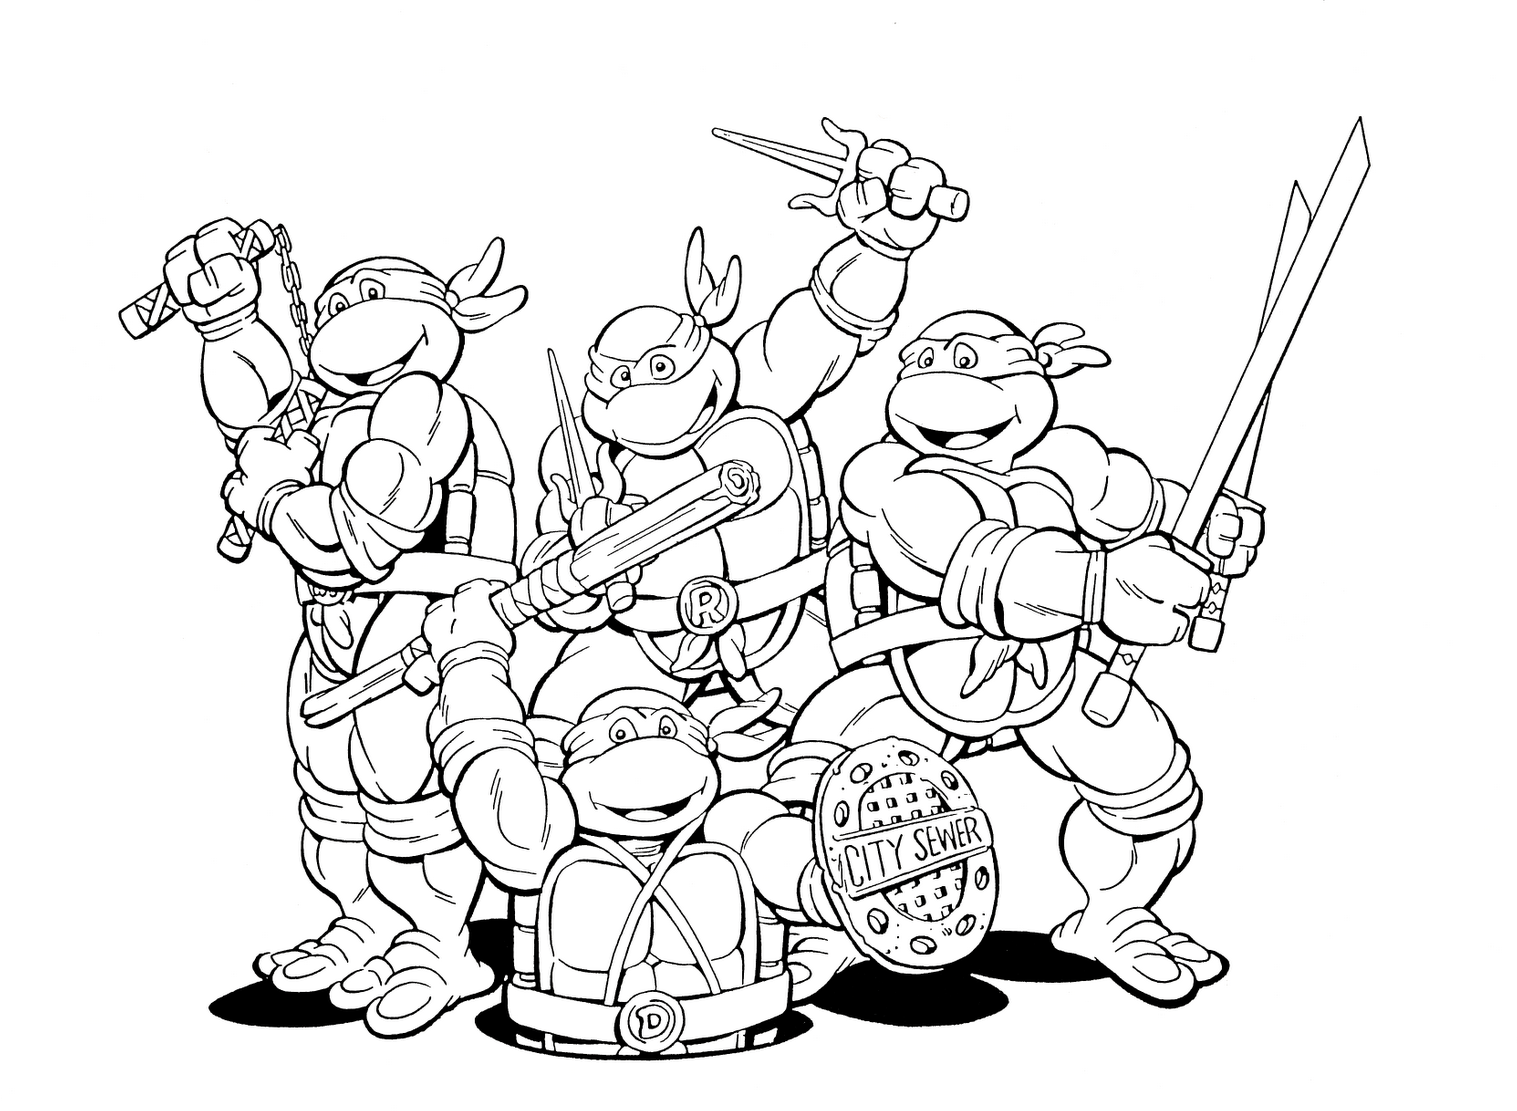 Nickelodeon Ninja Turtles Coloring Pages Desenhos Para Pintar